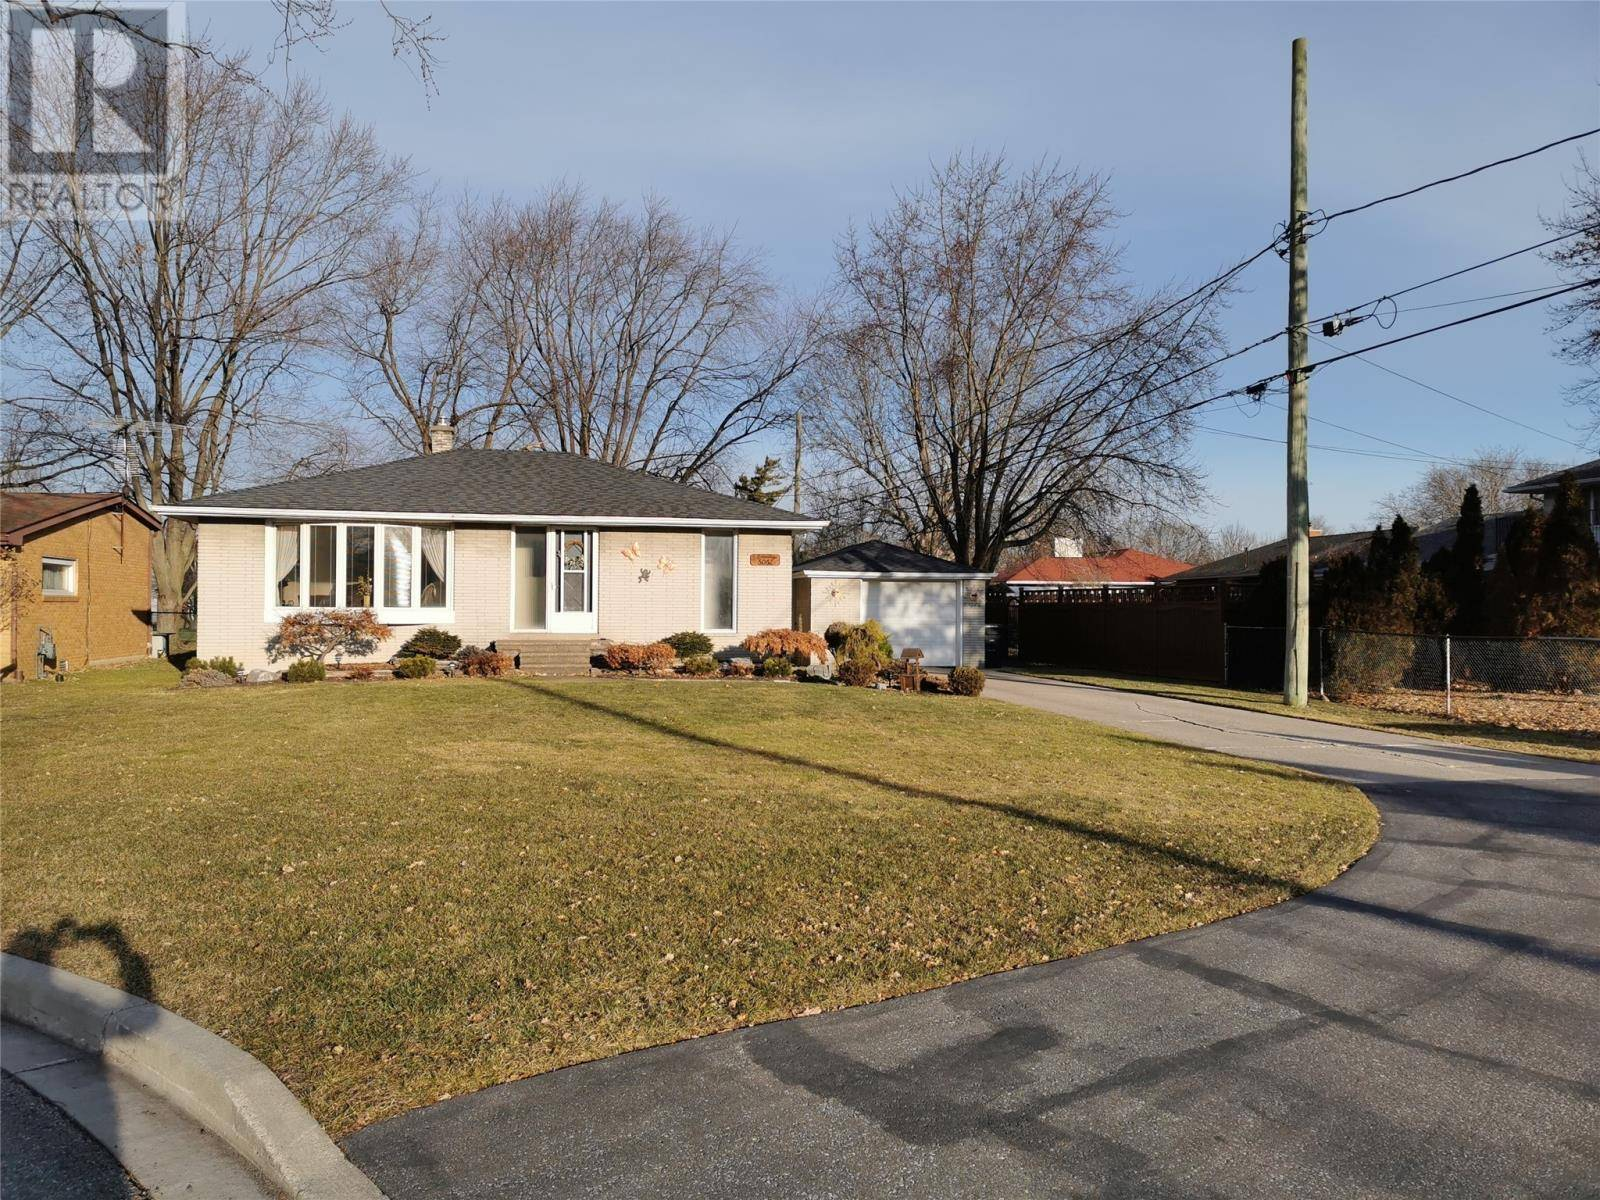 House for sale at 5082 Mcdonald Ct Windsor Ontario - MLS: 20000832